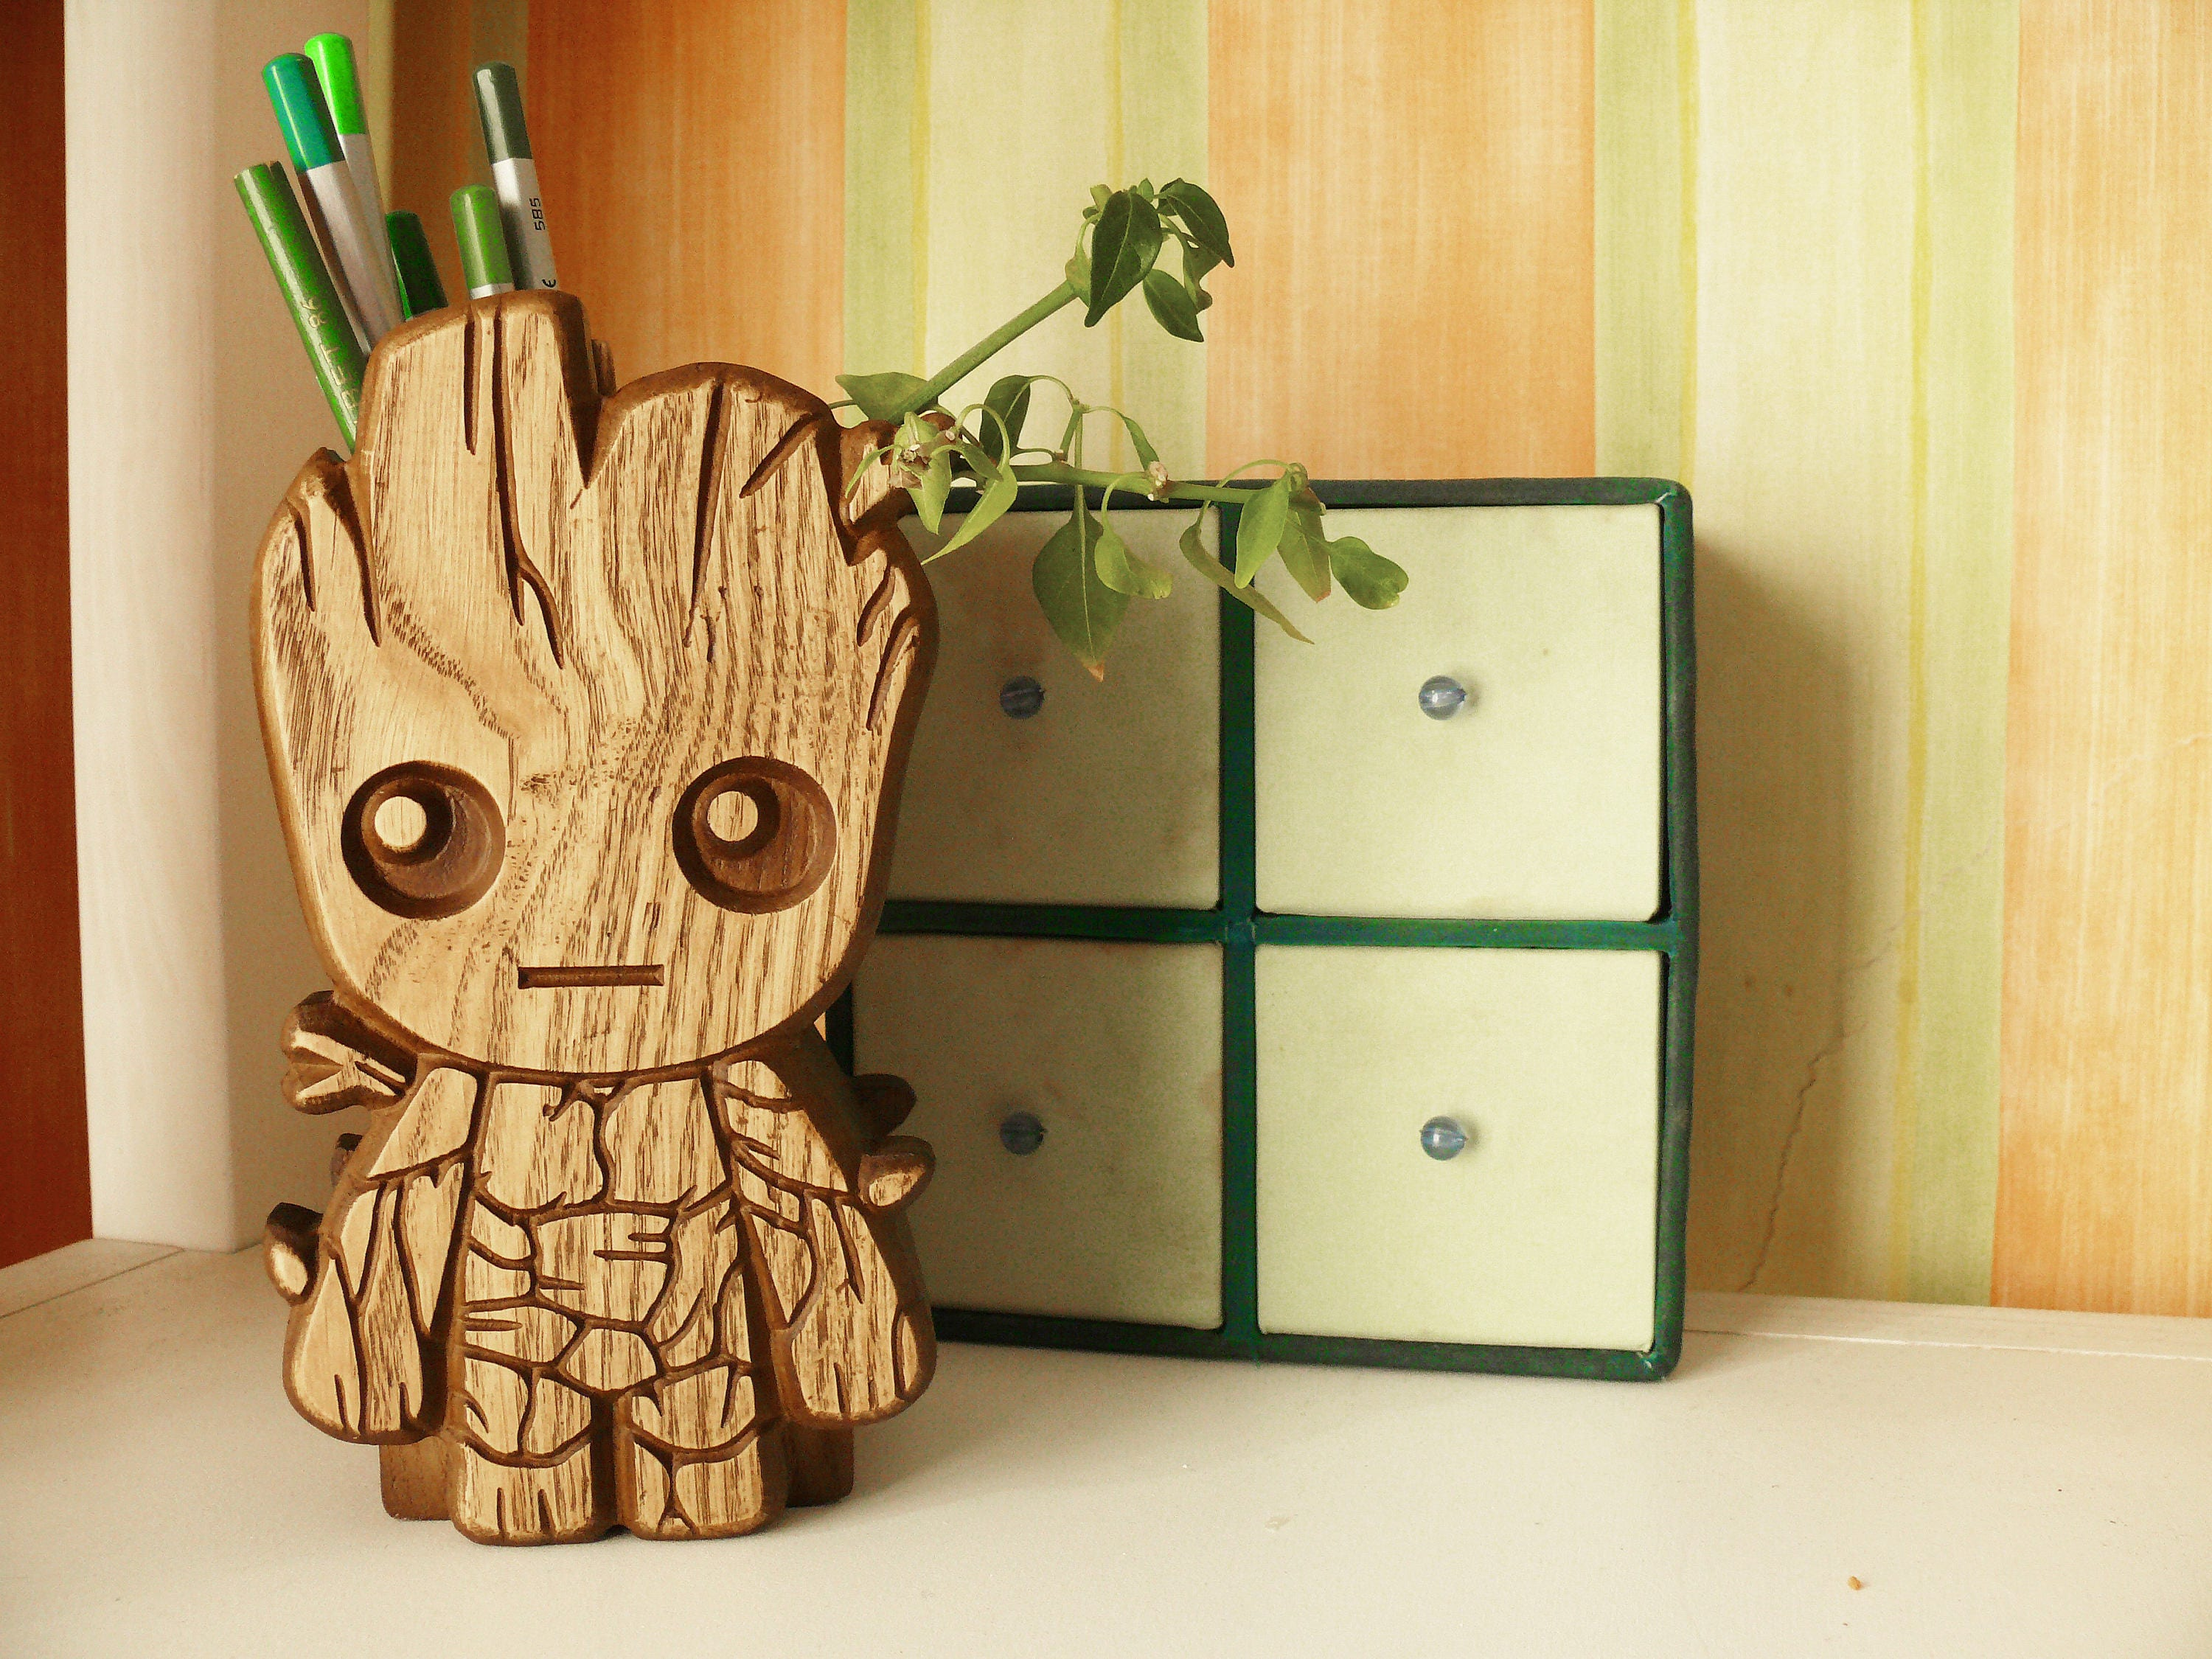 Wooden Baby Groot Pen Holder Baby Groot Holder Carved Baby Groot Holder Stand Desk Baby Groot Pencil Holder Guardians Of The Galaxy